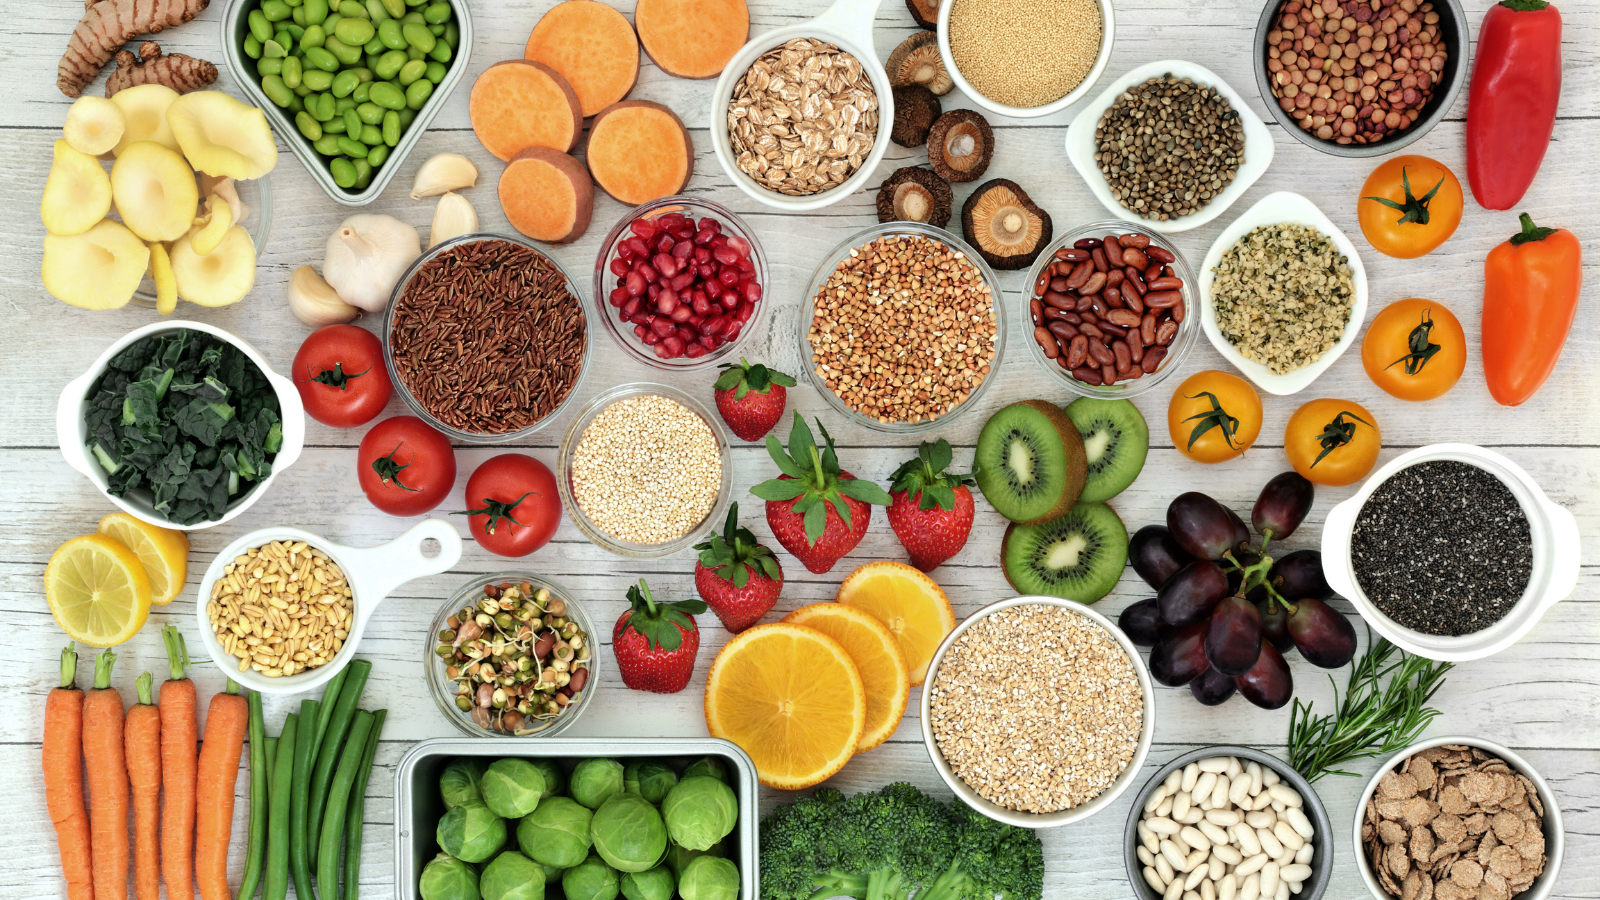 Fresh superfood concept with fruit, vegetables, grains, cereals, pulses, seeds, herbs and spices